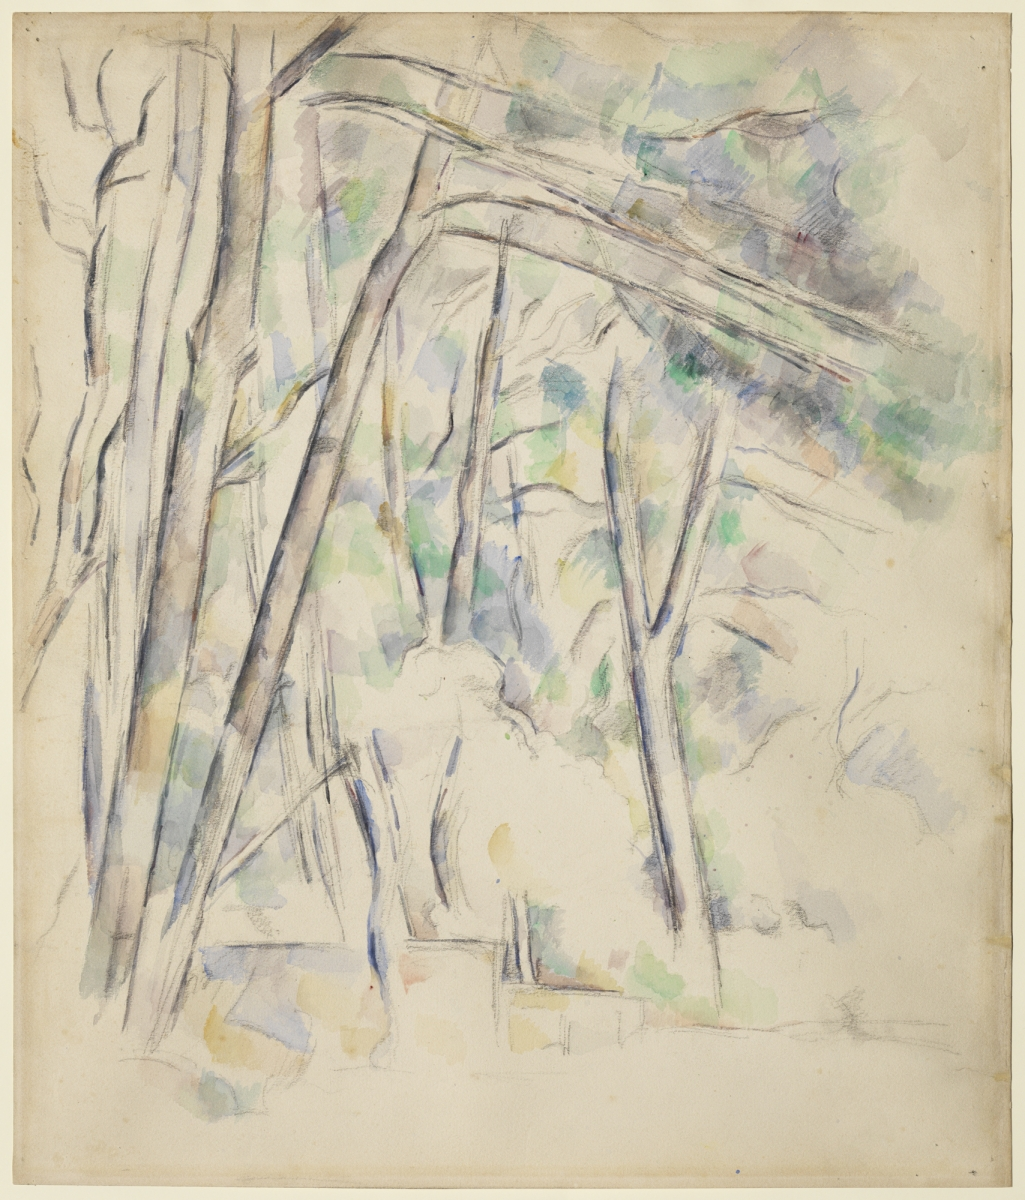 Paul Cézanne (French 1839–1906), Cistern in the Park of Ch.teau Noir, 1895–1900. Watercolor and graphite on pale buff wove paper, 50.6 x 43.4 cm. The Henry and Rose Pearlman Foundation, on long-term loan to the Princeton University Art Museum / photo: Bruce M. White